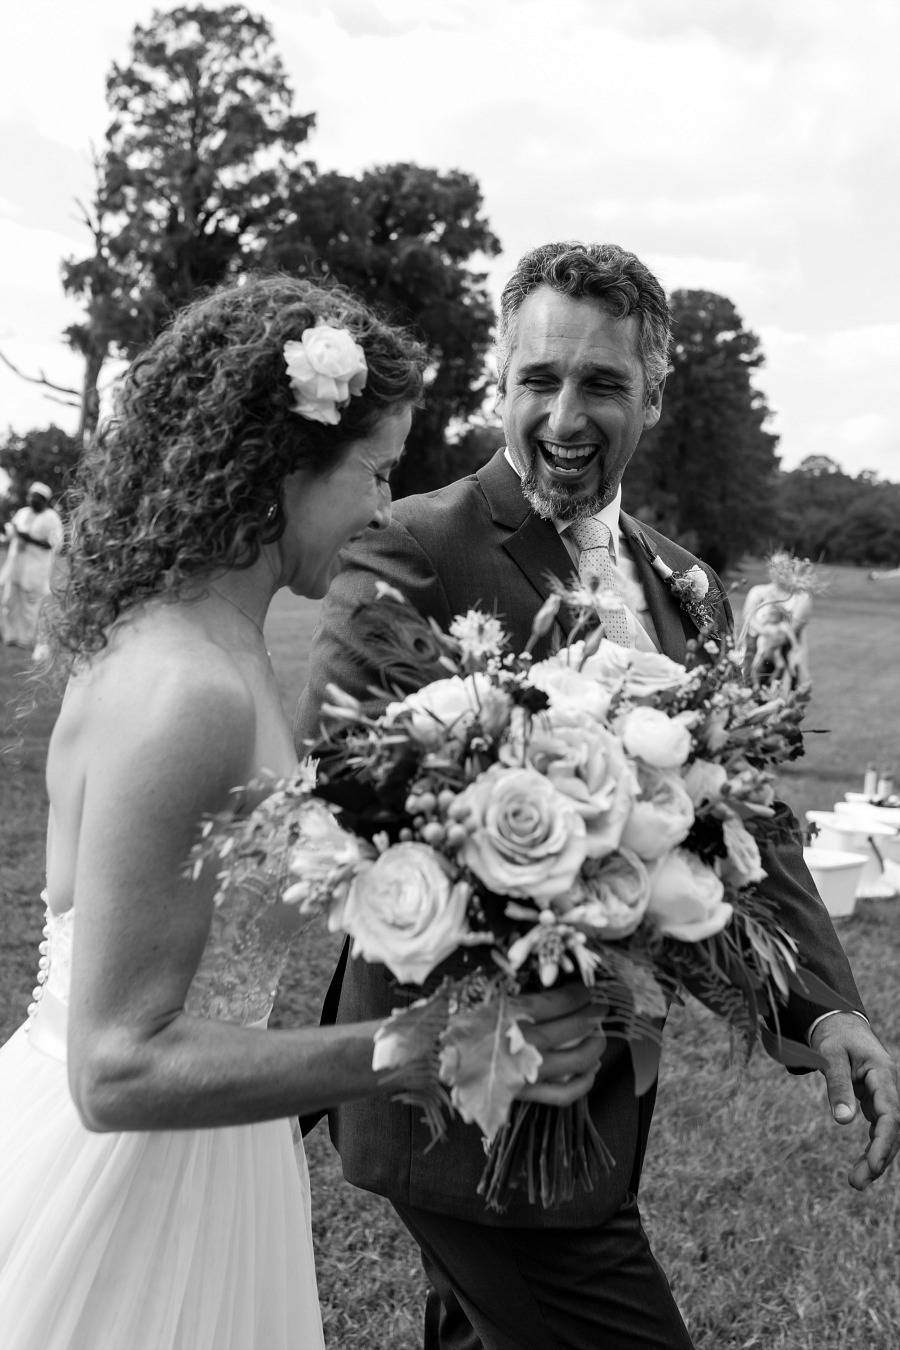 Wedding Photography by Lindsay Collette in Virginia